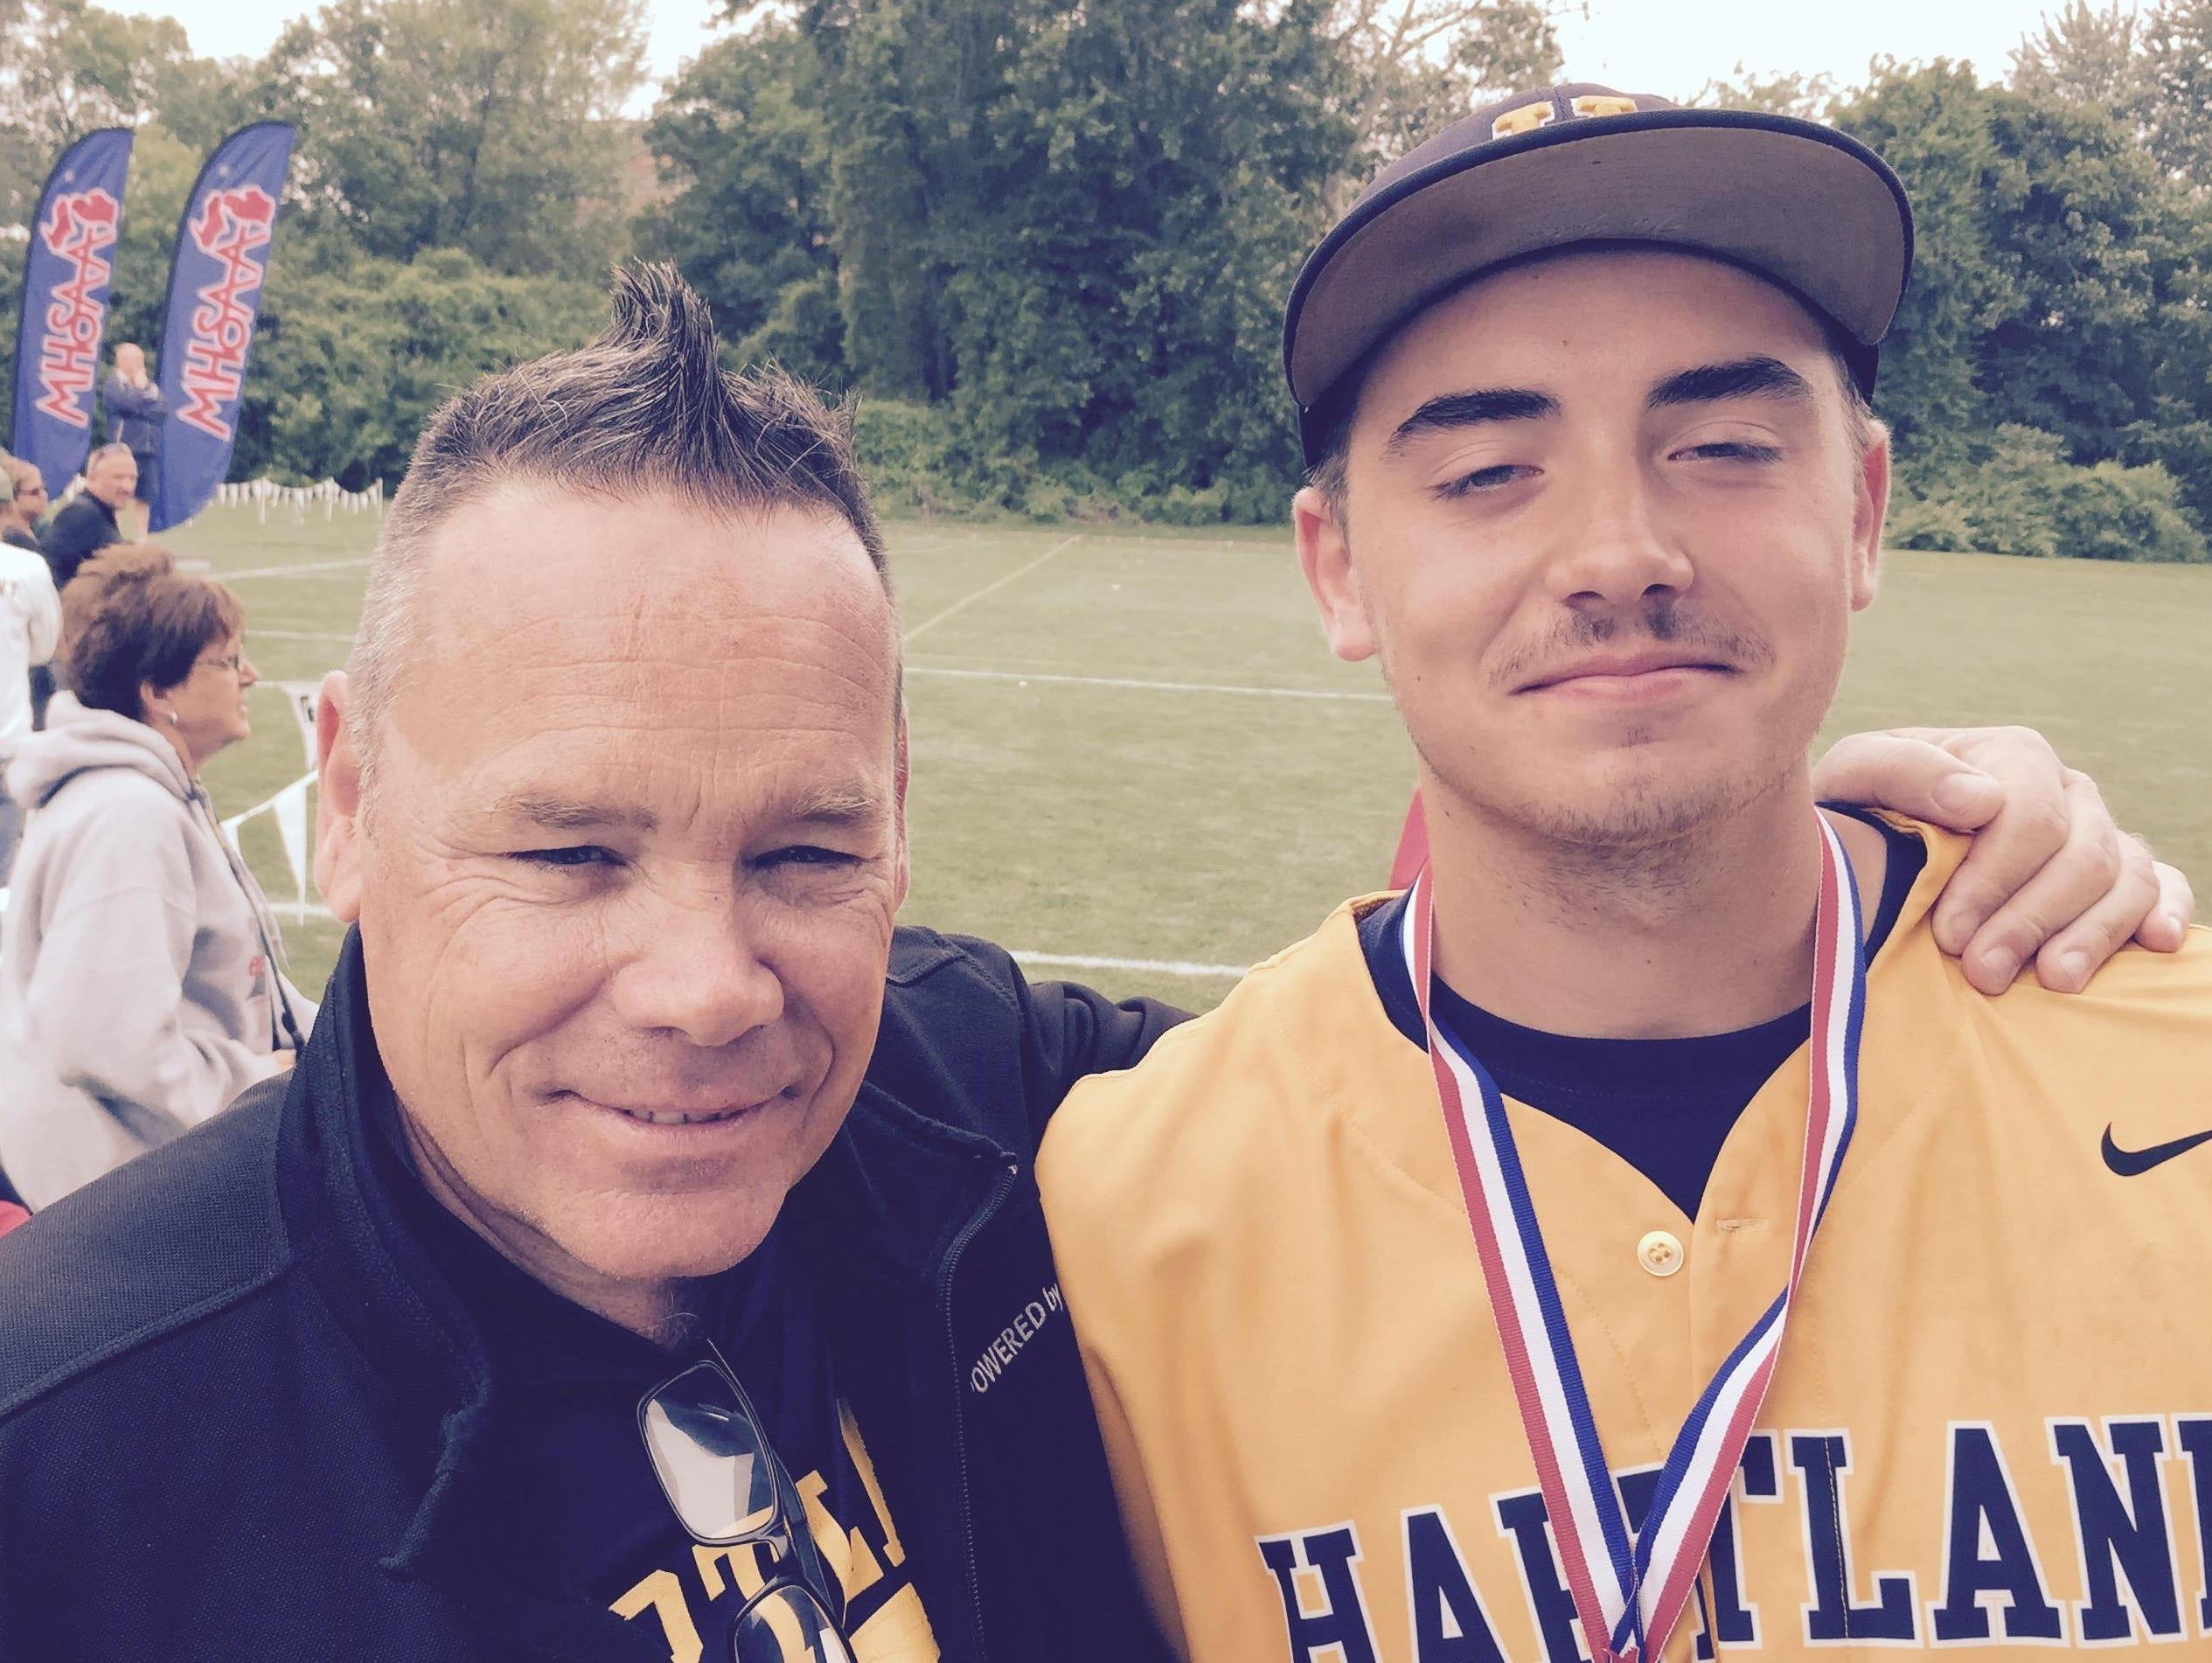 Hartland's John Baker, right, tossed a masterful 10-inning, five-hitter in a 2-1 win over Portage Northern in Division 1 last year.